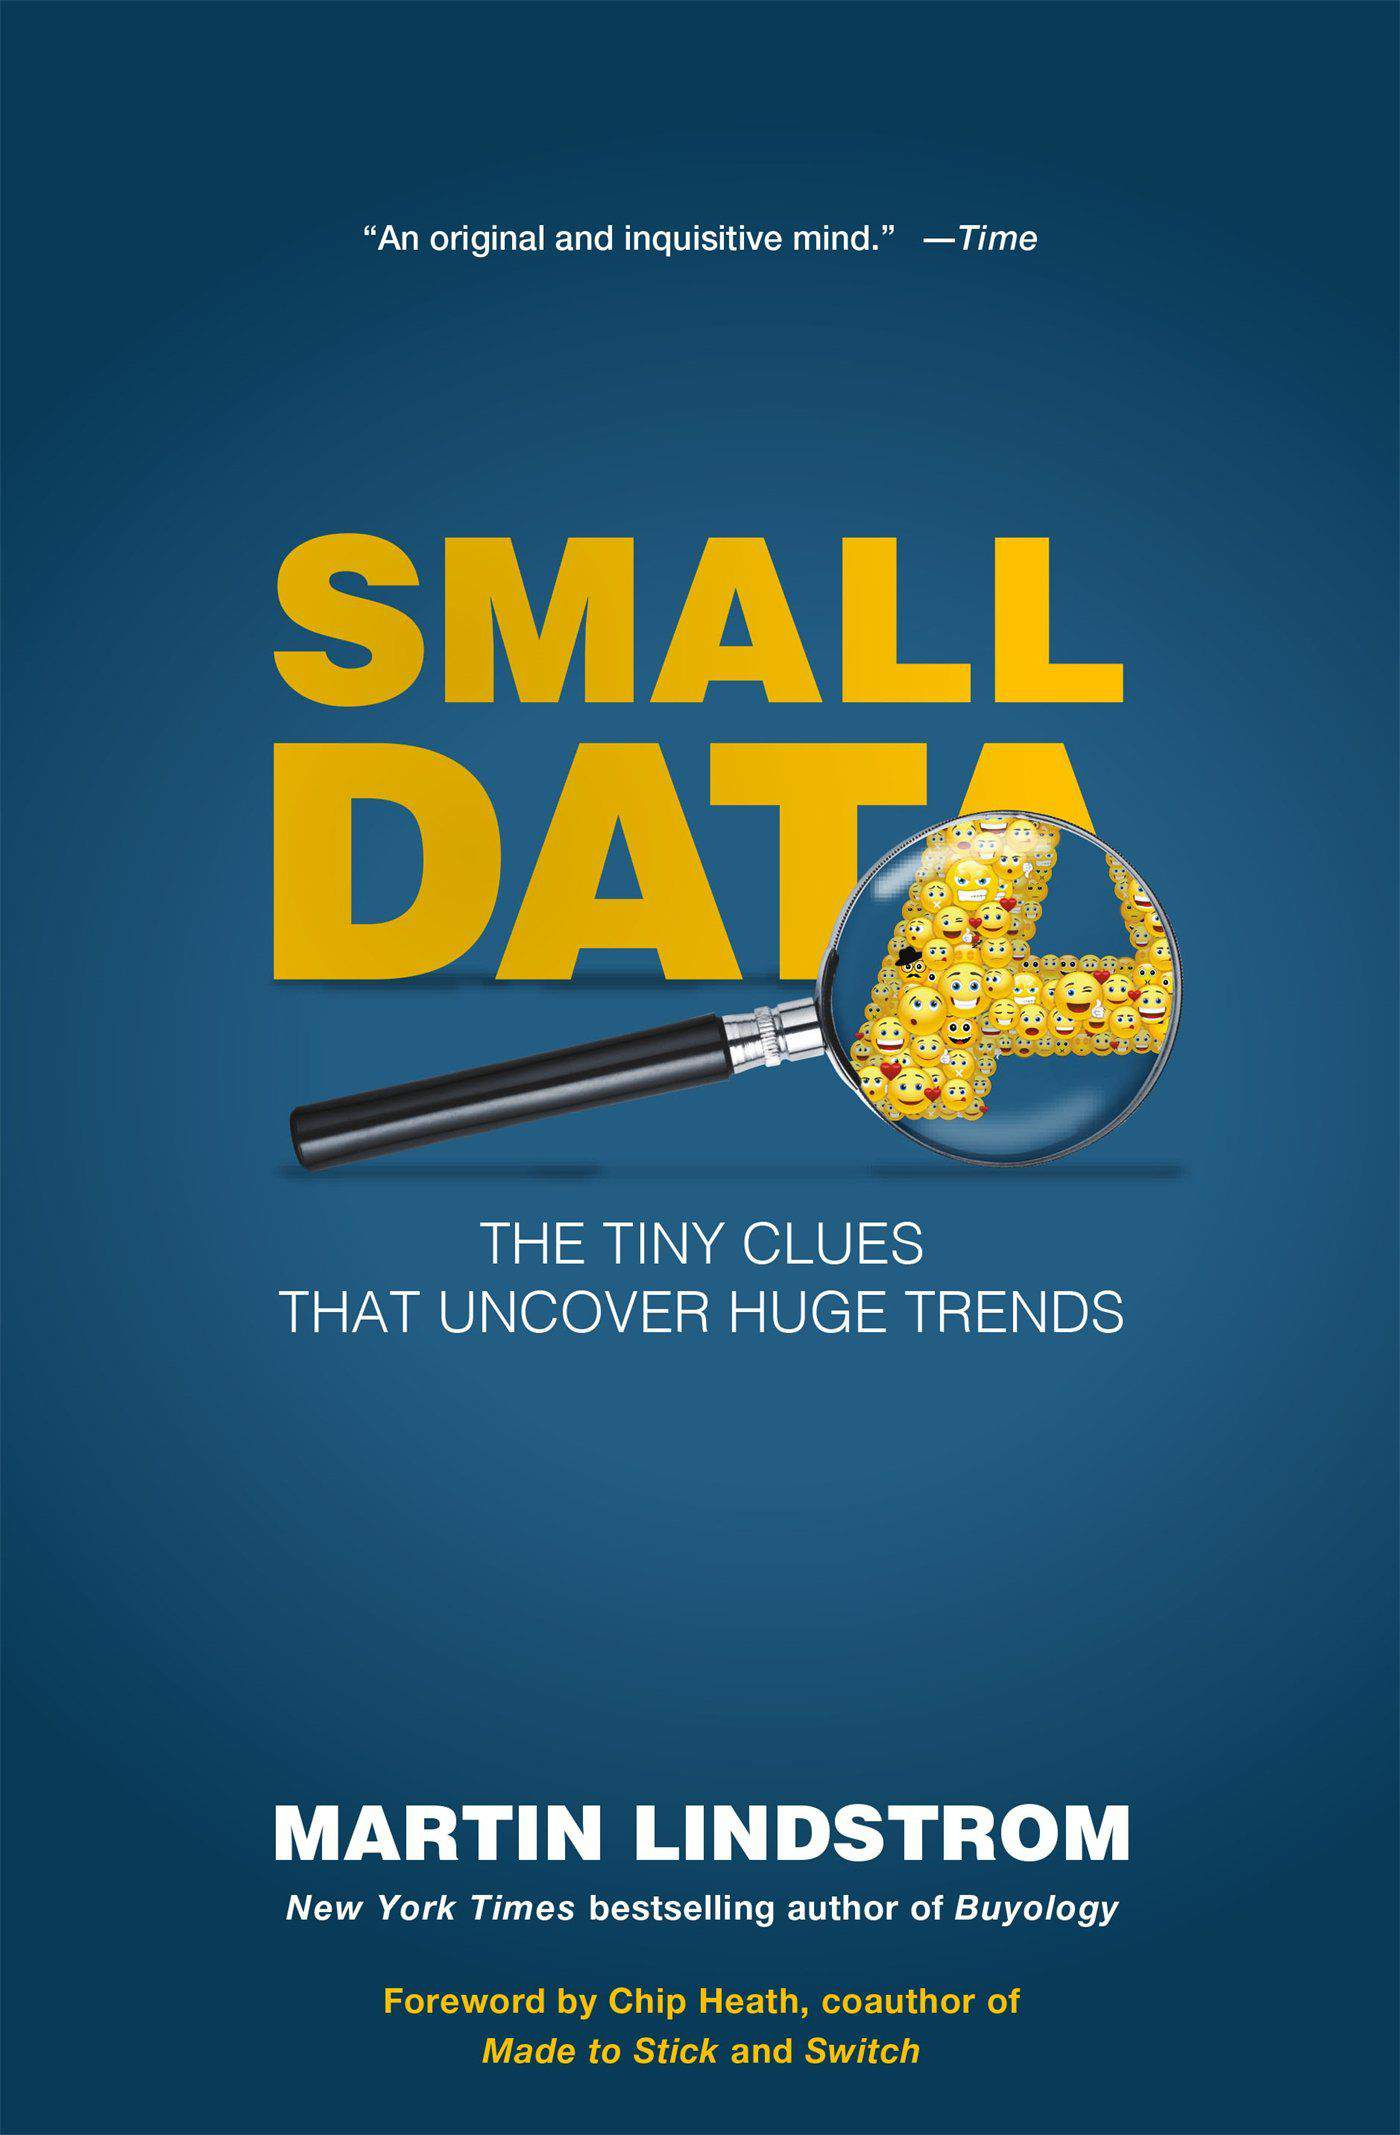 Small DataThe Tiny Clues That Uncover Huge Trends